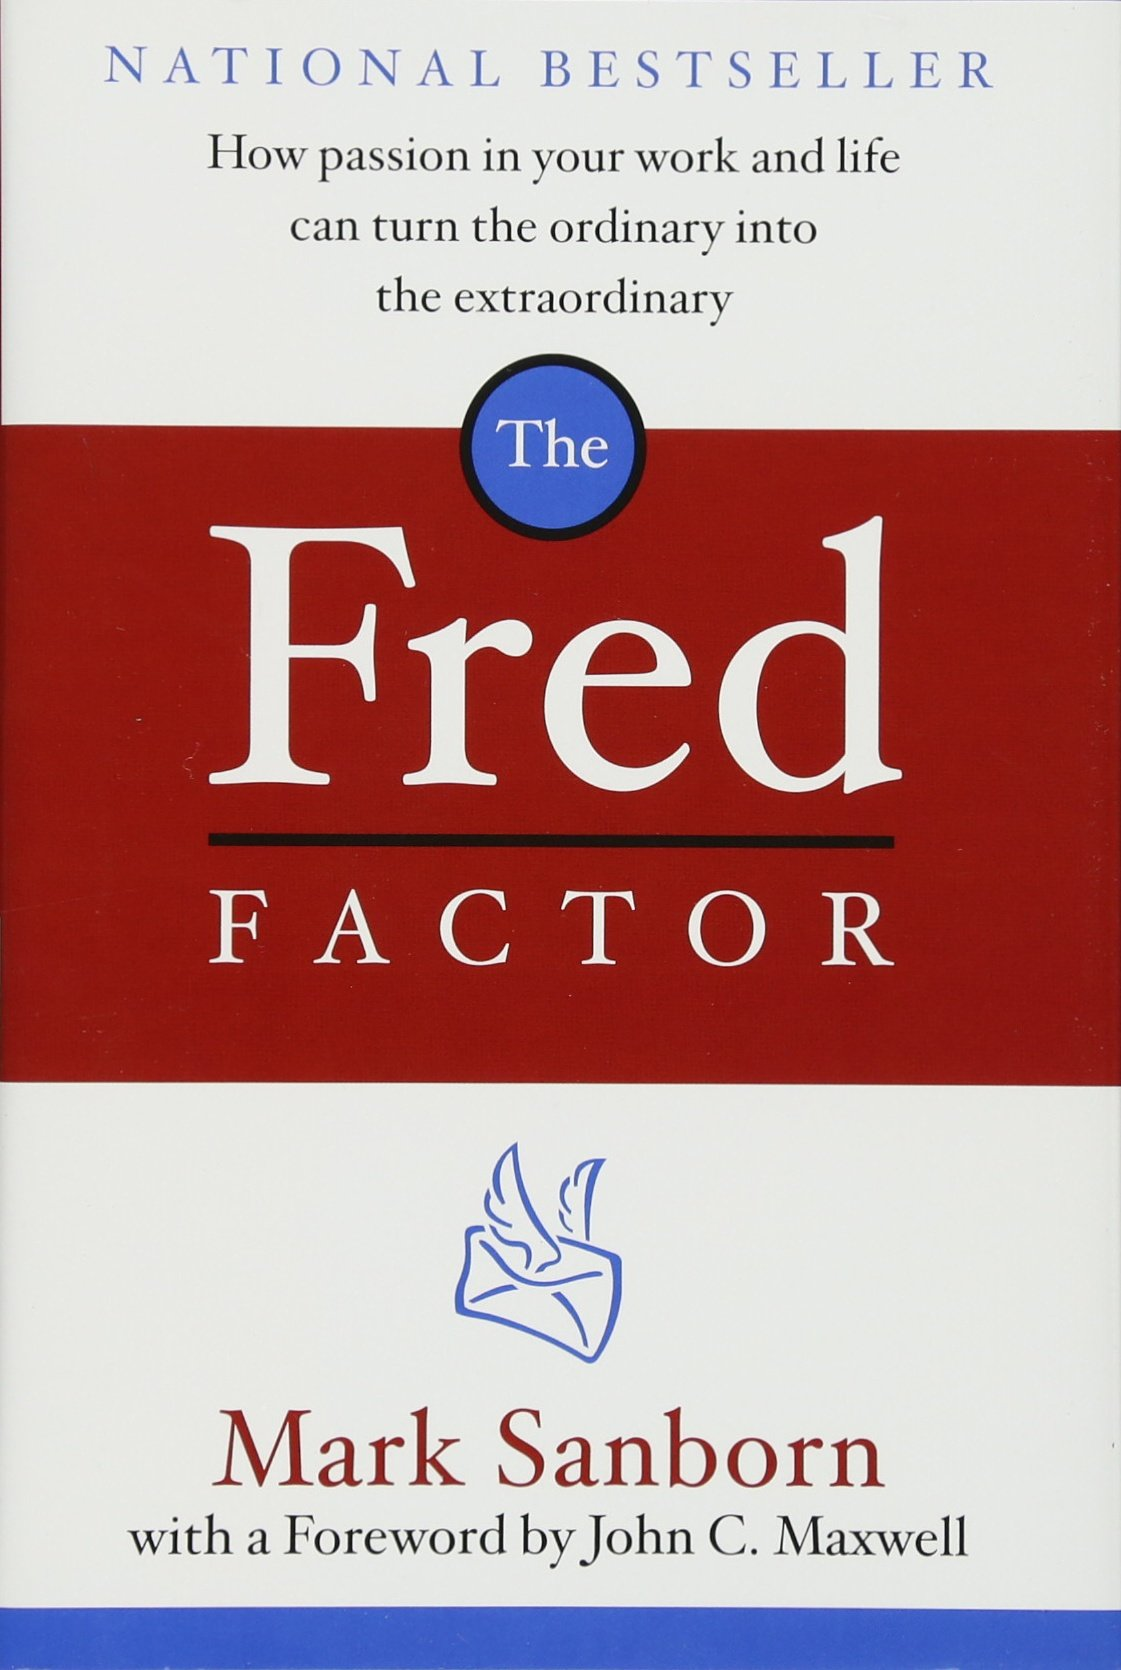 Fred Factor Passion Ordinary Extraordinary product image